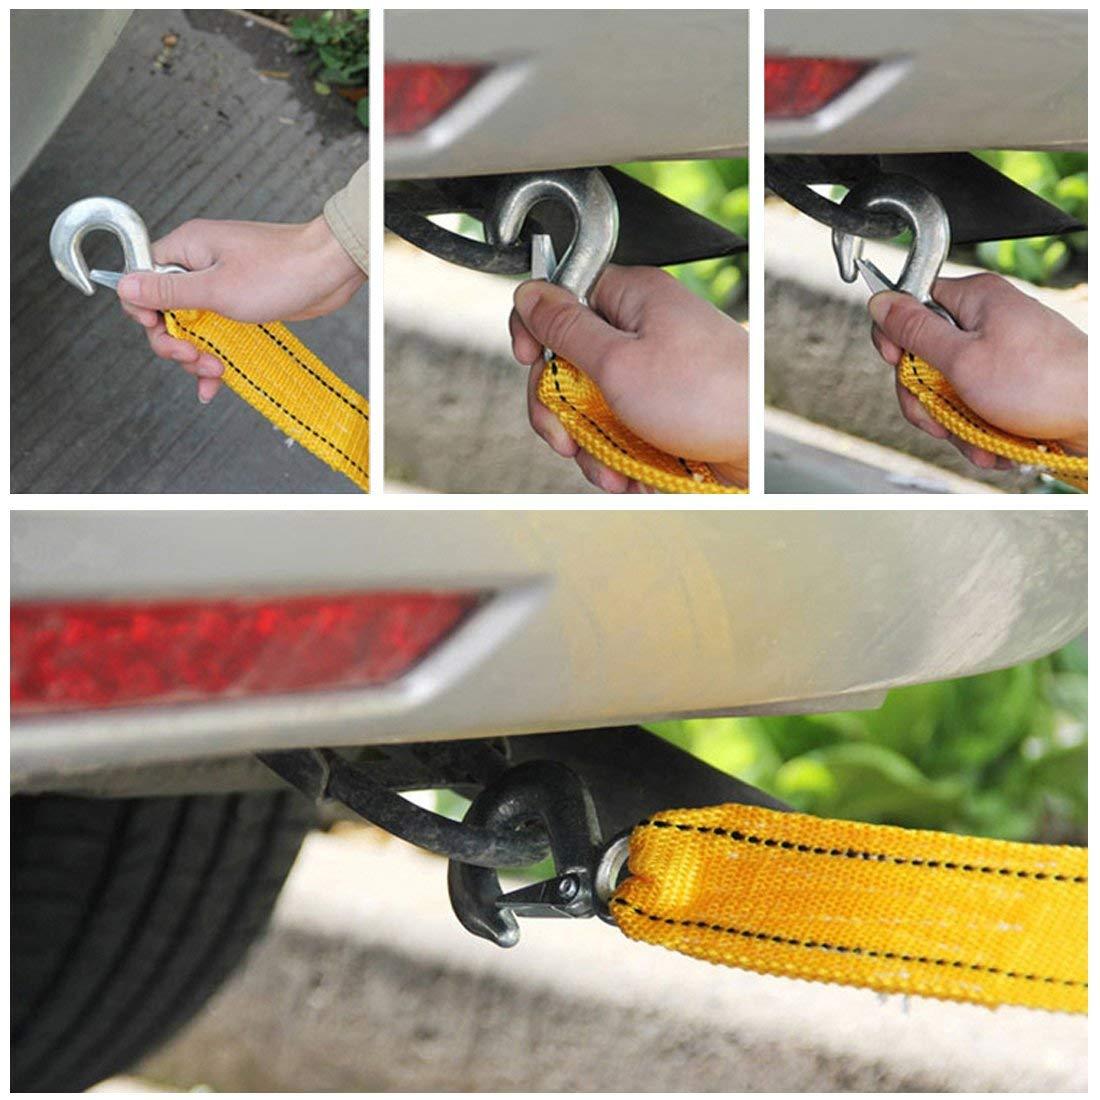 2inch x 13feet LSHCX Heavy Duty 6600 LB Capacity Tow Strap with Two Safety Hooks